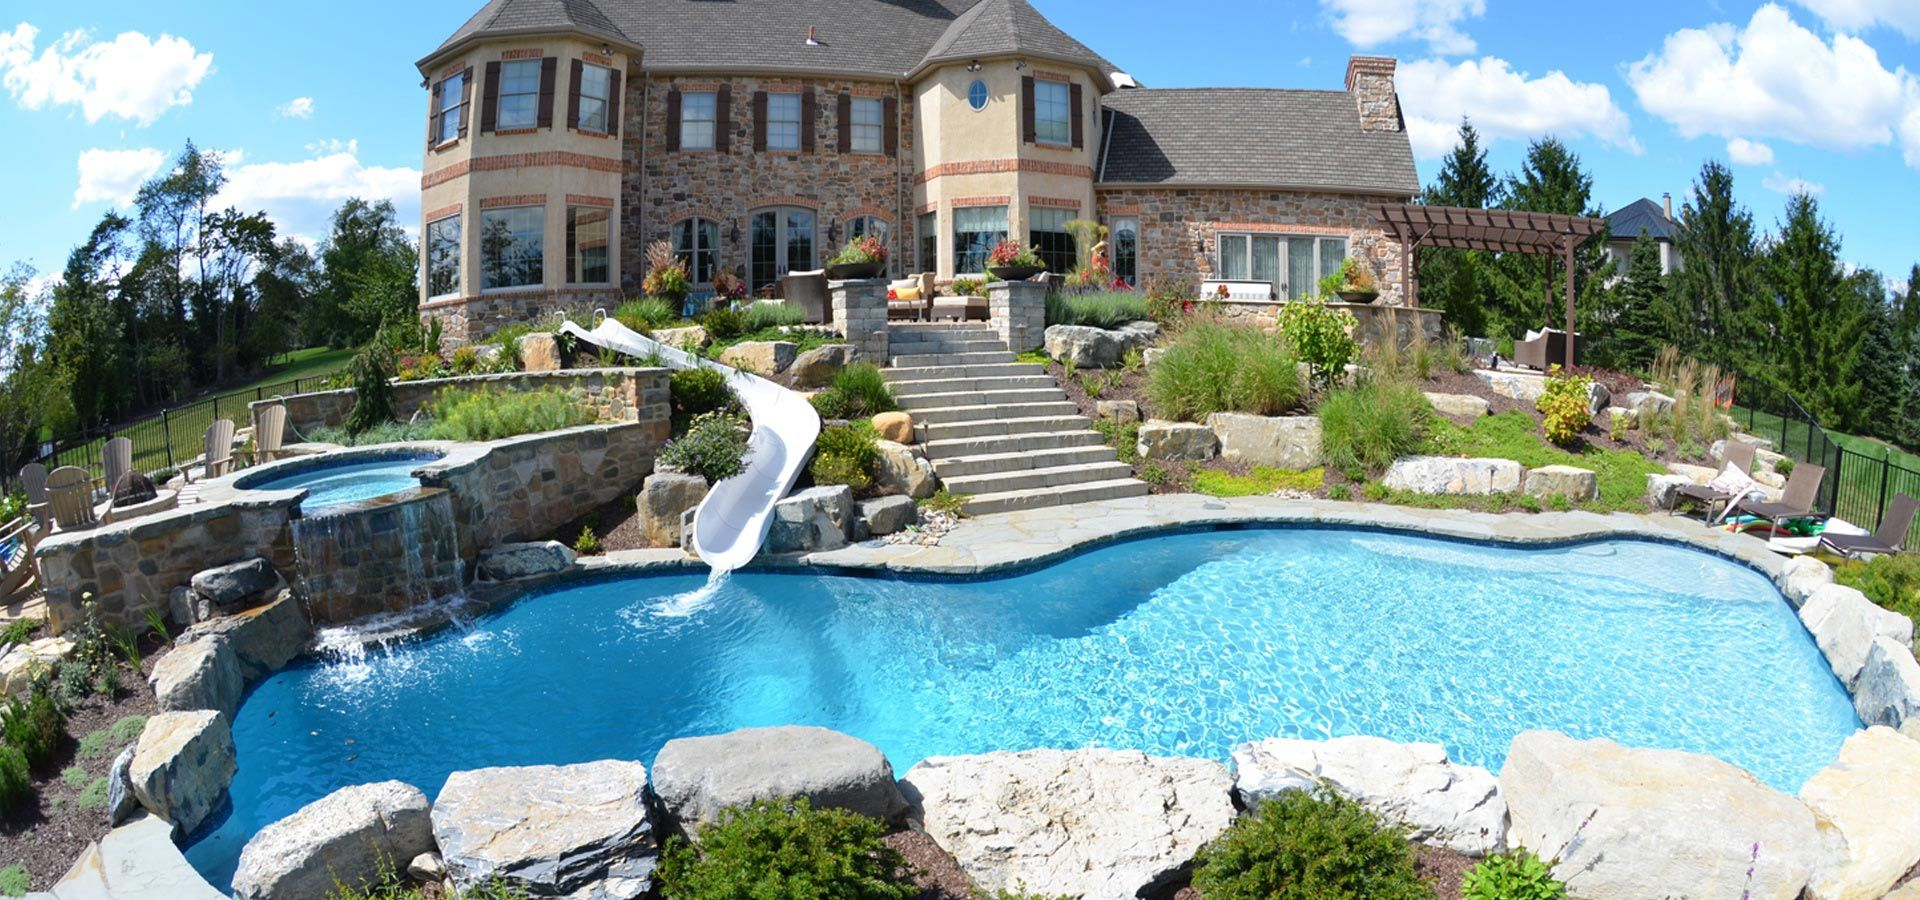 Custom pool with waterslide spa diamond brite finish for Inground pool designs